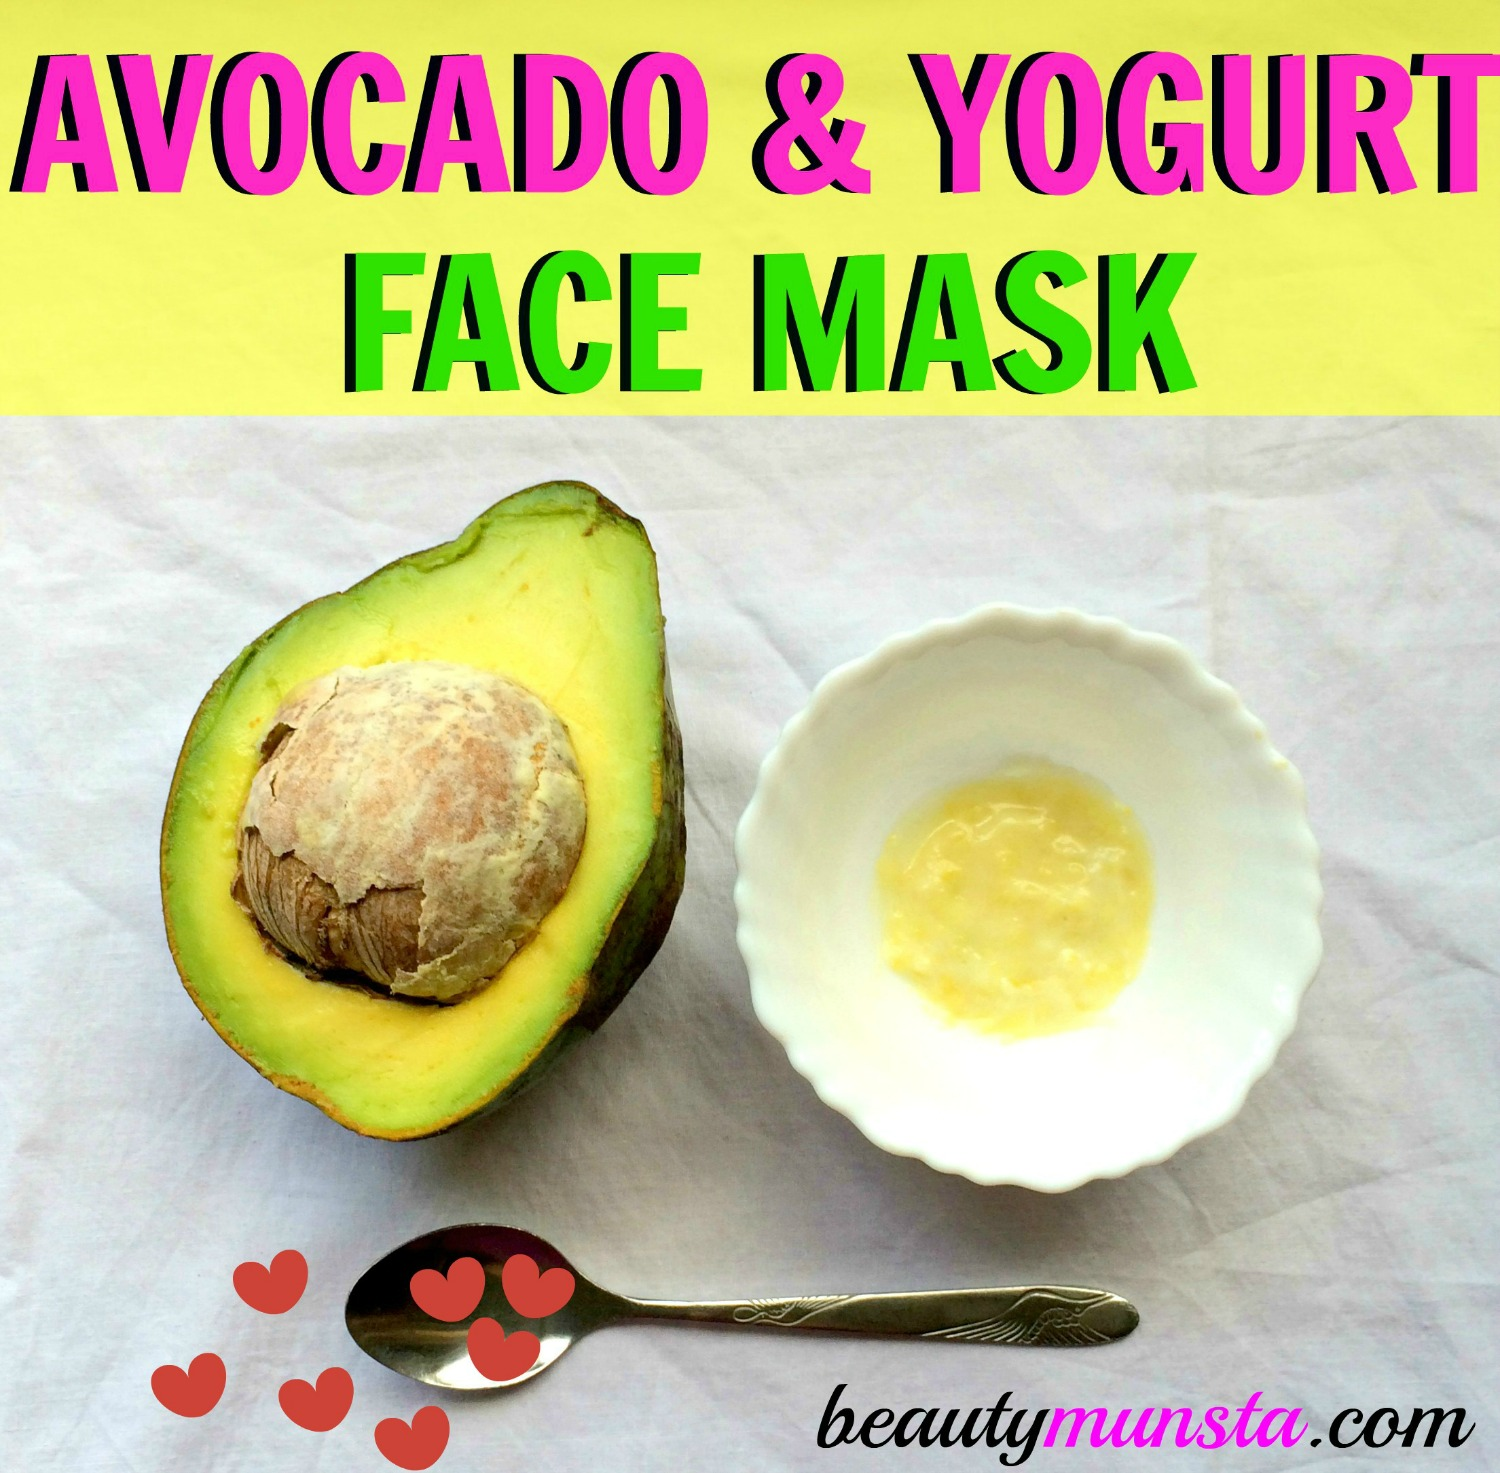 How do you make avocado face packs and face mask at home